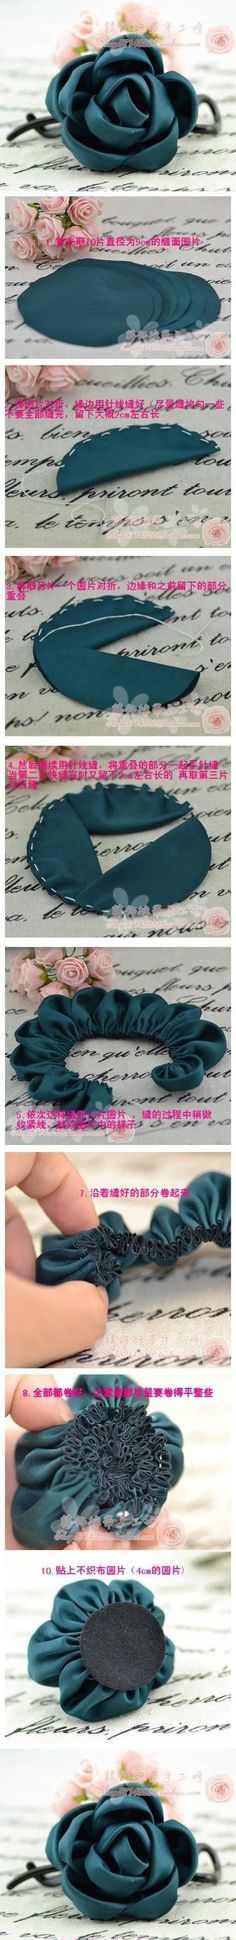 DIY-Easy-Fabric-Roses.jpg 450×3,701 píxeles